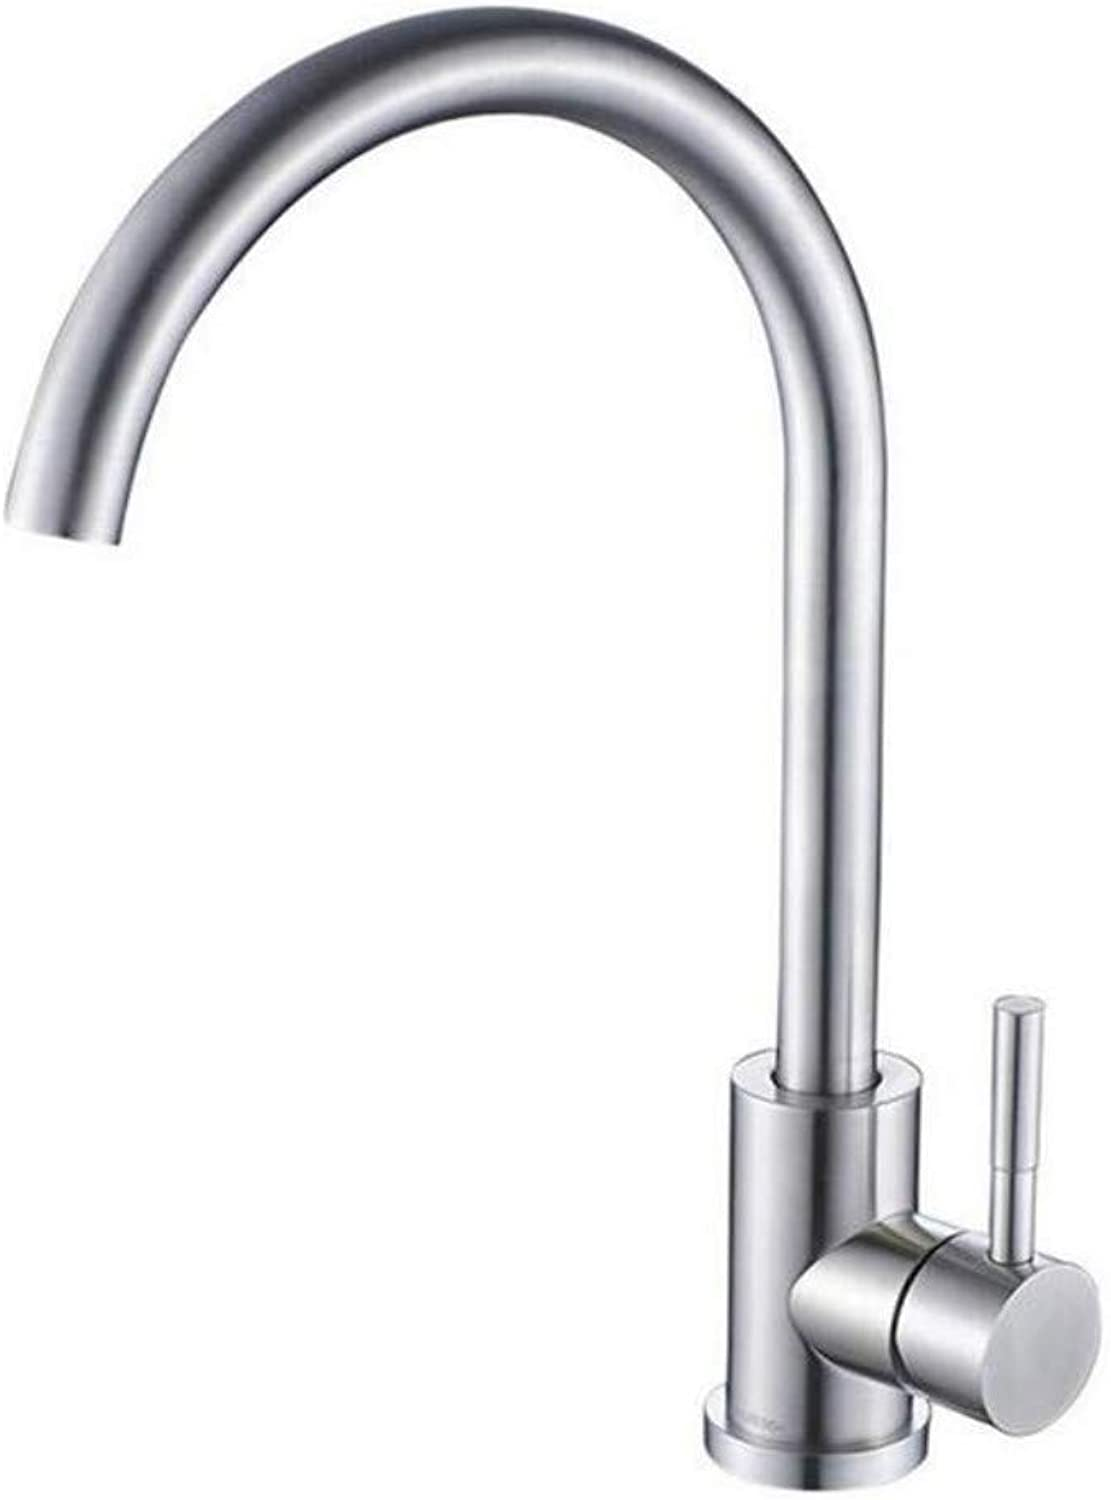 Basin Taps Swivel Spout Faucet Faucet Single Hole Brushed Nickel Swivel Kitchen Sink Hot and Cold Water Mixer Tap